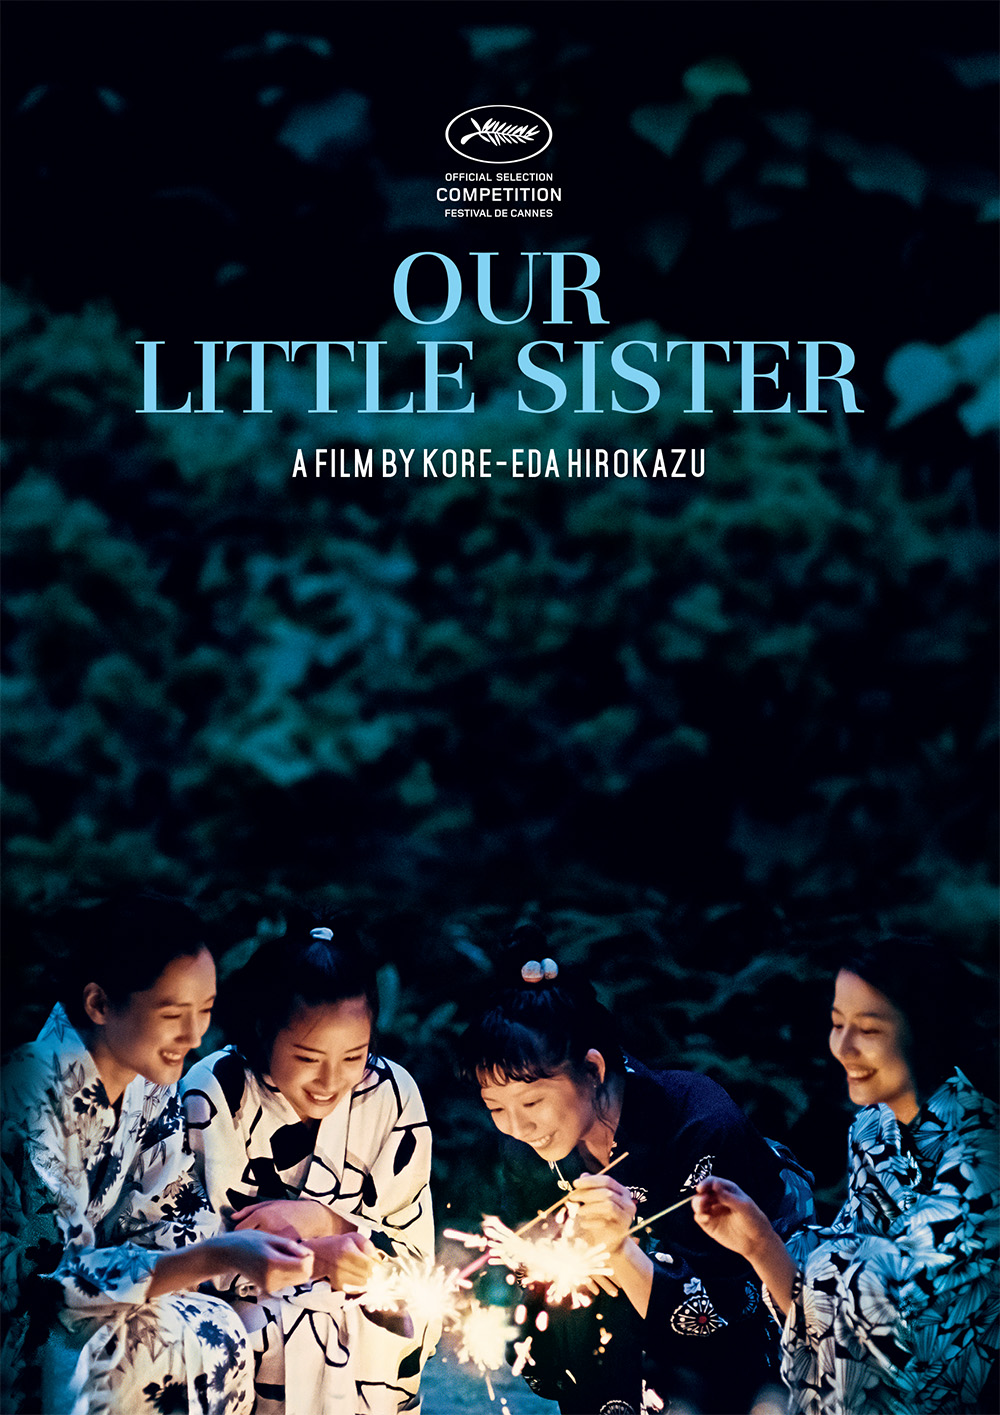 Shoplifters (film) and Our Little Sister are Japaese movies